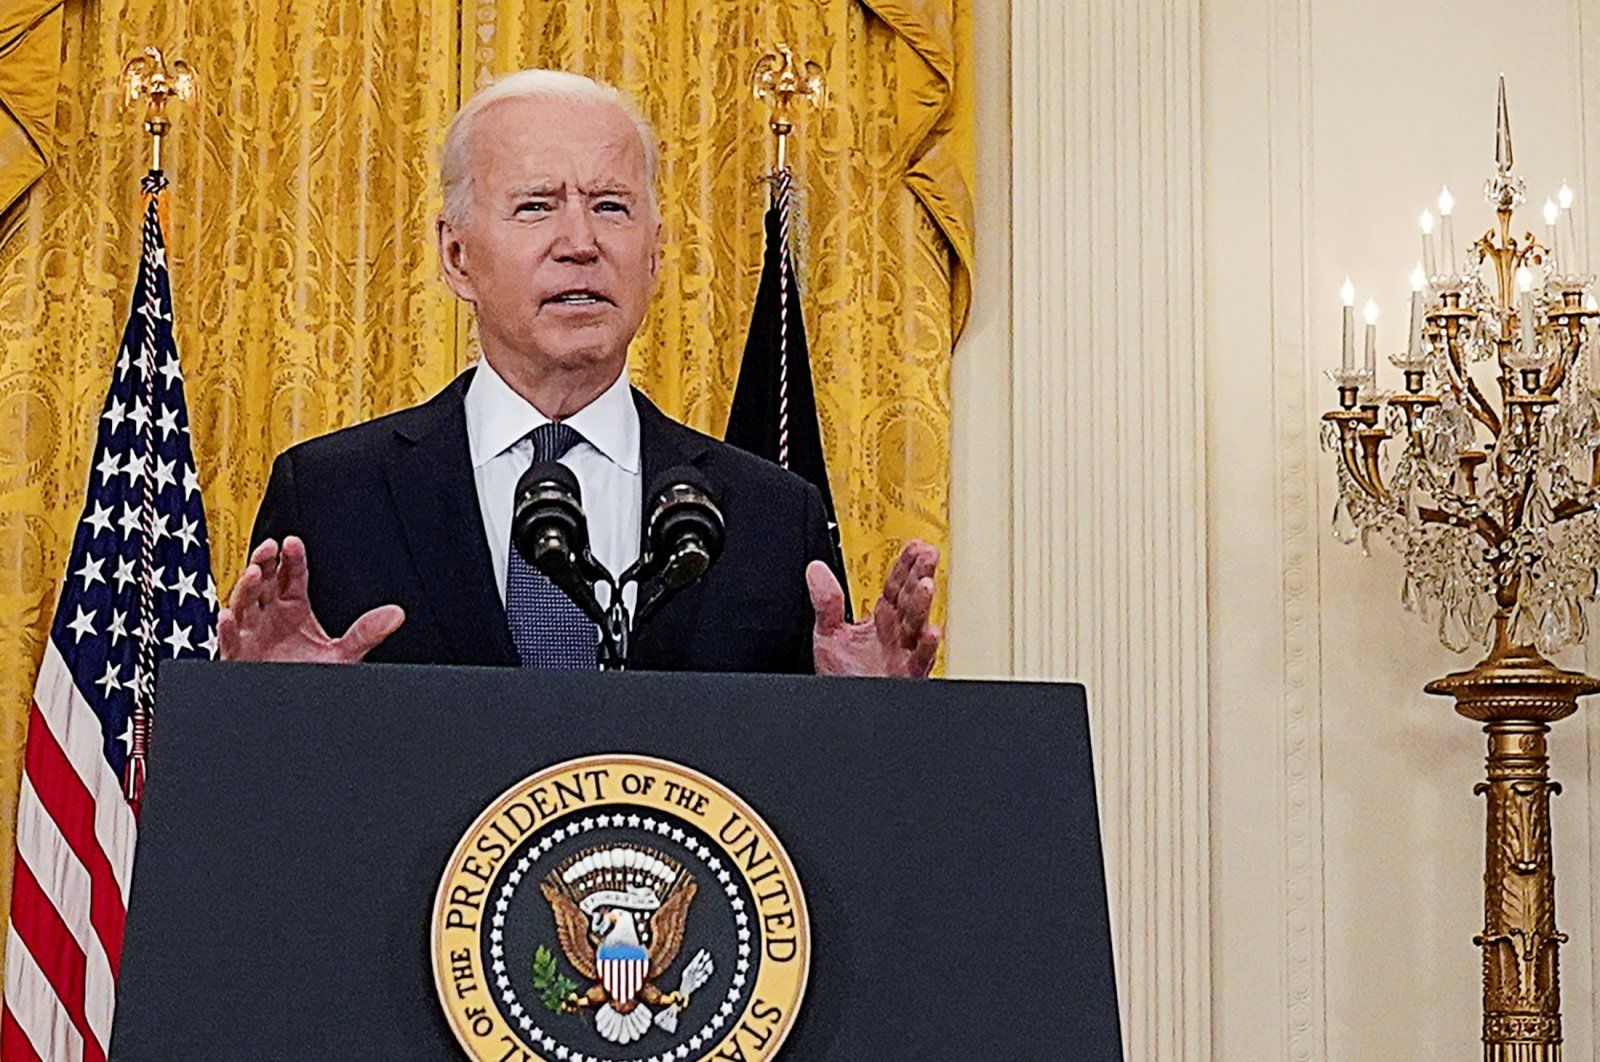 President Joe Biden delivers remarks on the United States economy in the East Room at the White House in Washington, D.C., the U.S., May 10, 2021. (Reuters Photo)